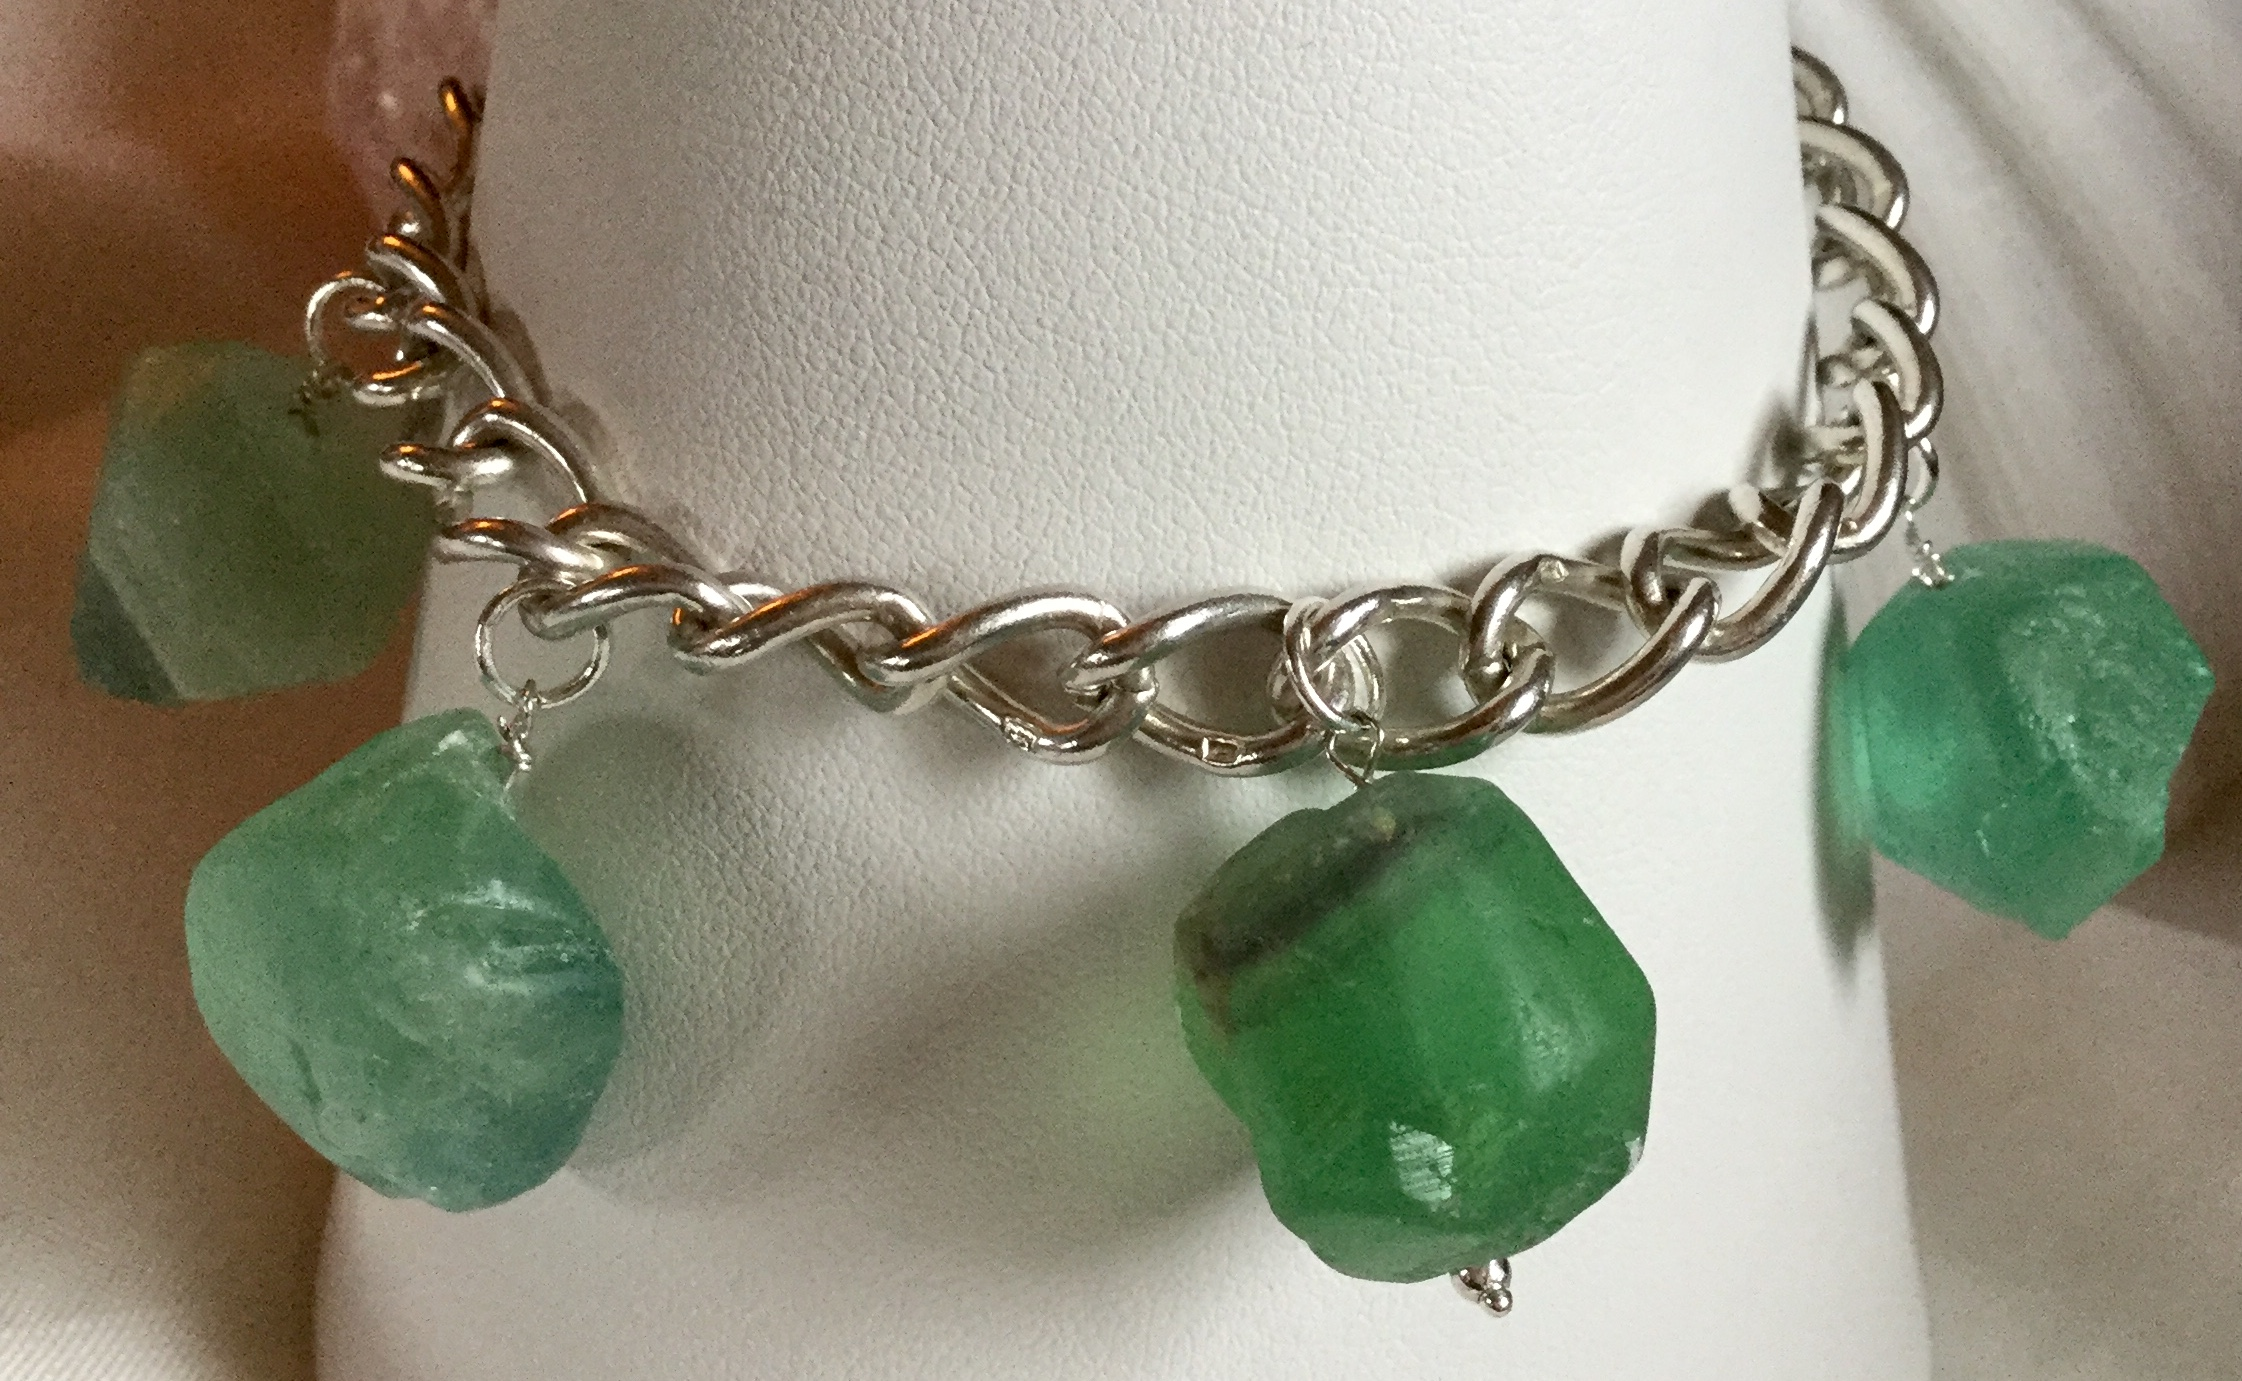 Lot 13 - Vintage Solid Silver 14.6 grams with Fluorite Green Charms